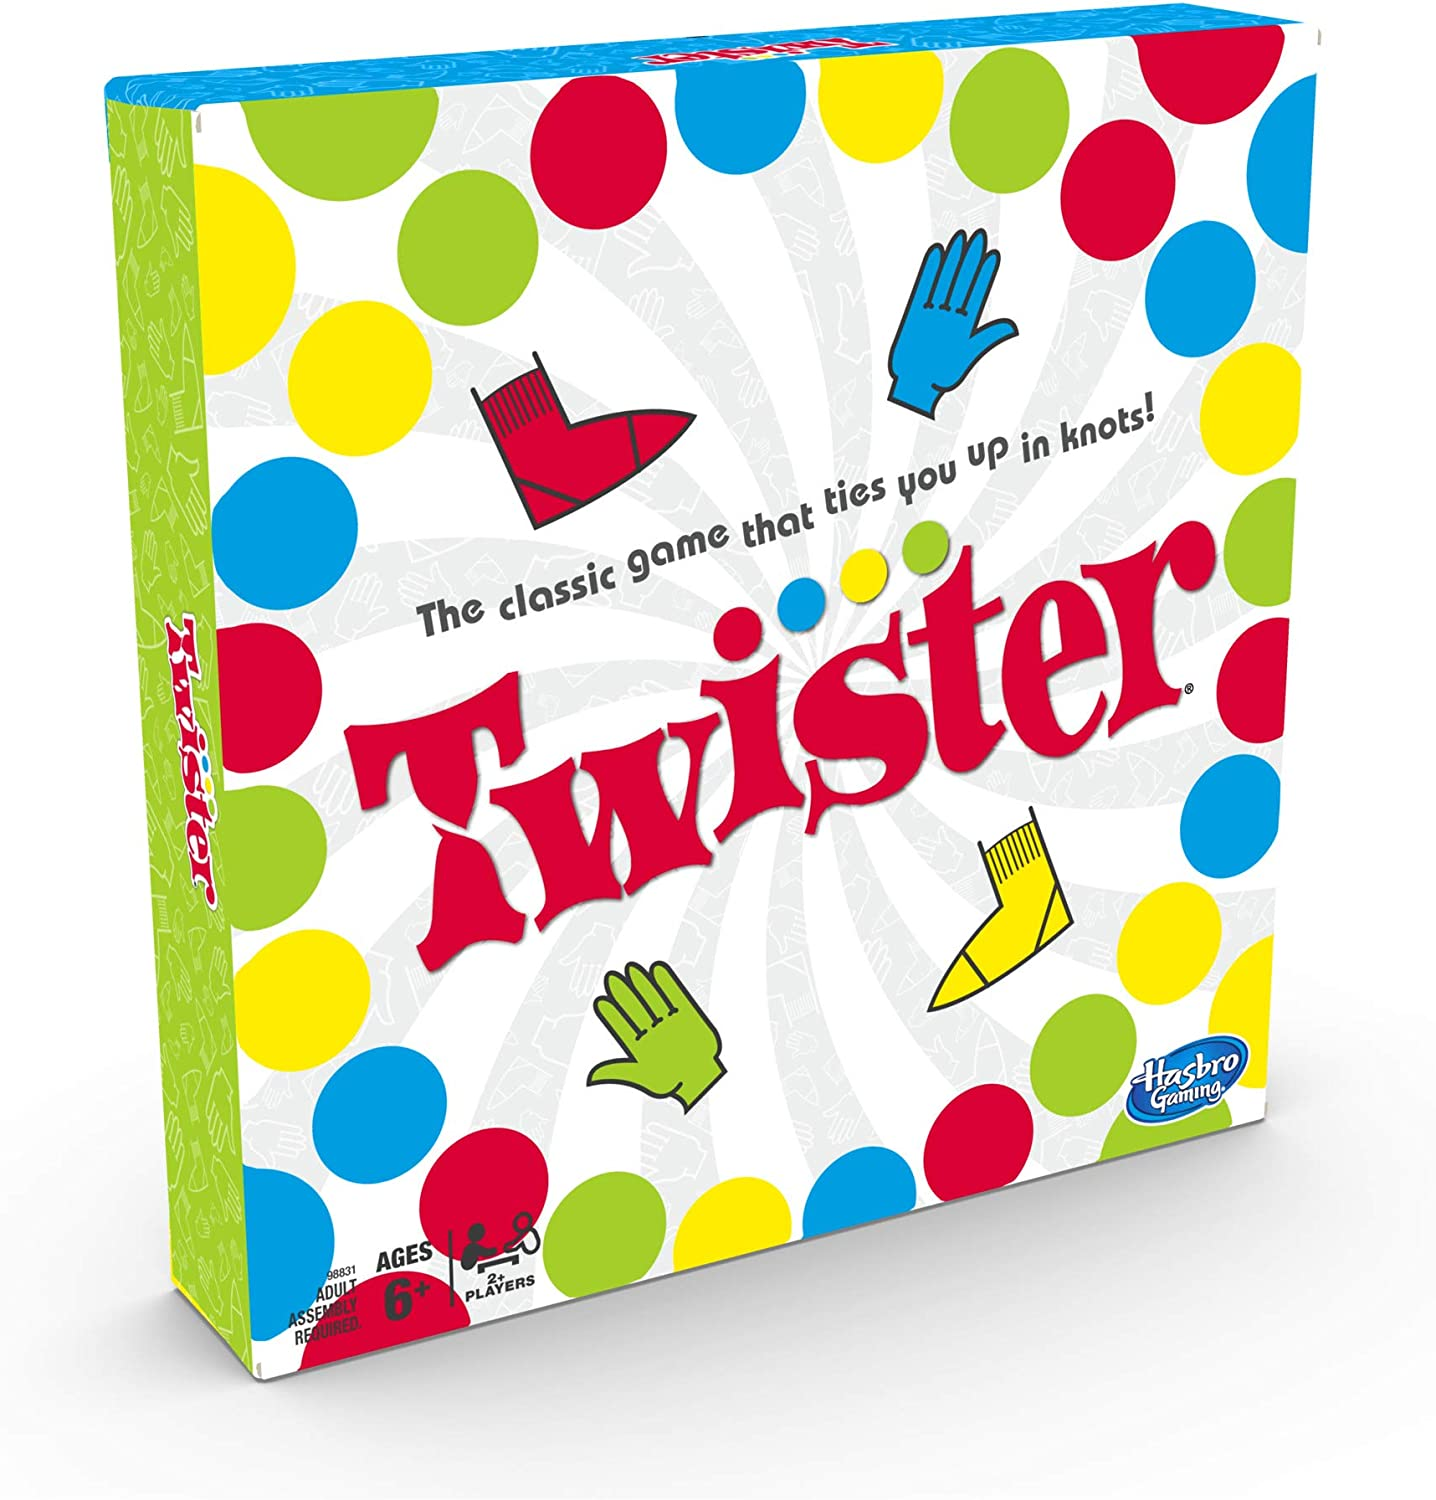 Amazon Com Twister Game Party Game Classic Board Game For 2 Or More Players Indoor And Outdoor Game For Kids 6 And Up Packaging May Vary Toys Games